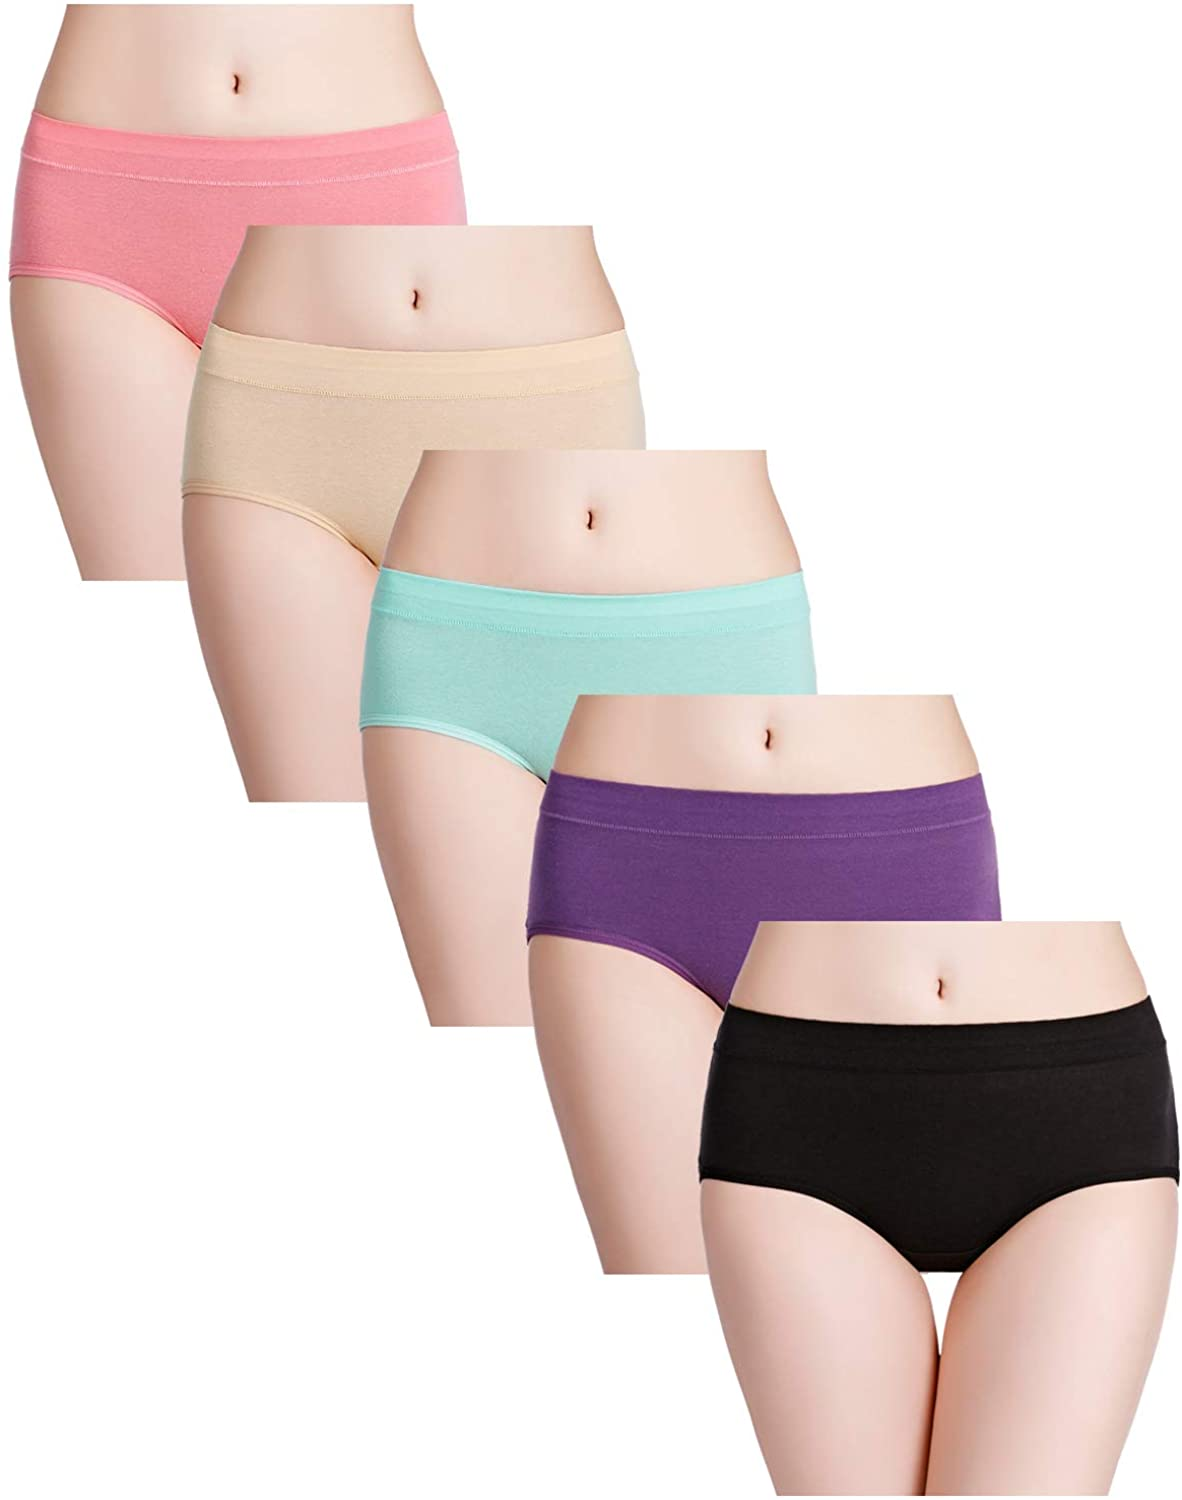 Fulyou Women Cotton Panties Mid Rise Underwear Briefs Ladies Stretch Breathable Comfortable Underpants